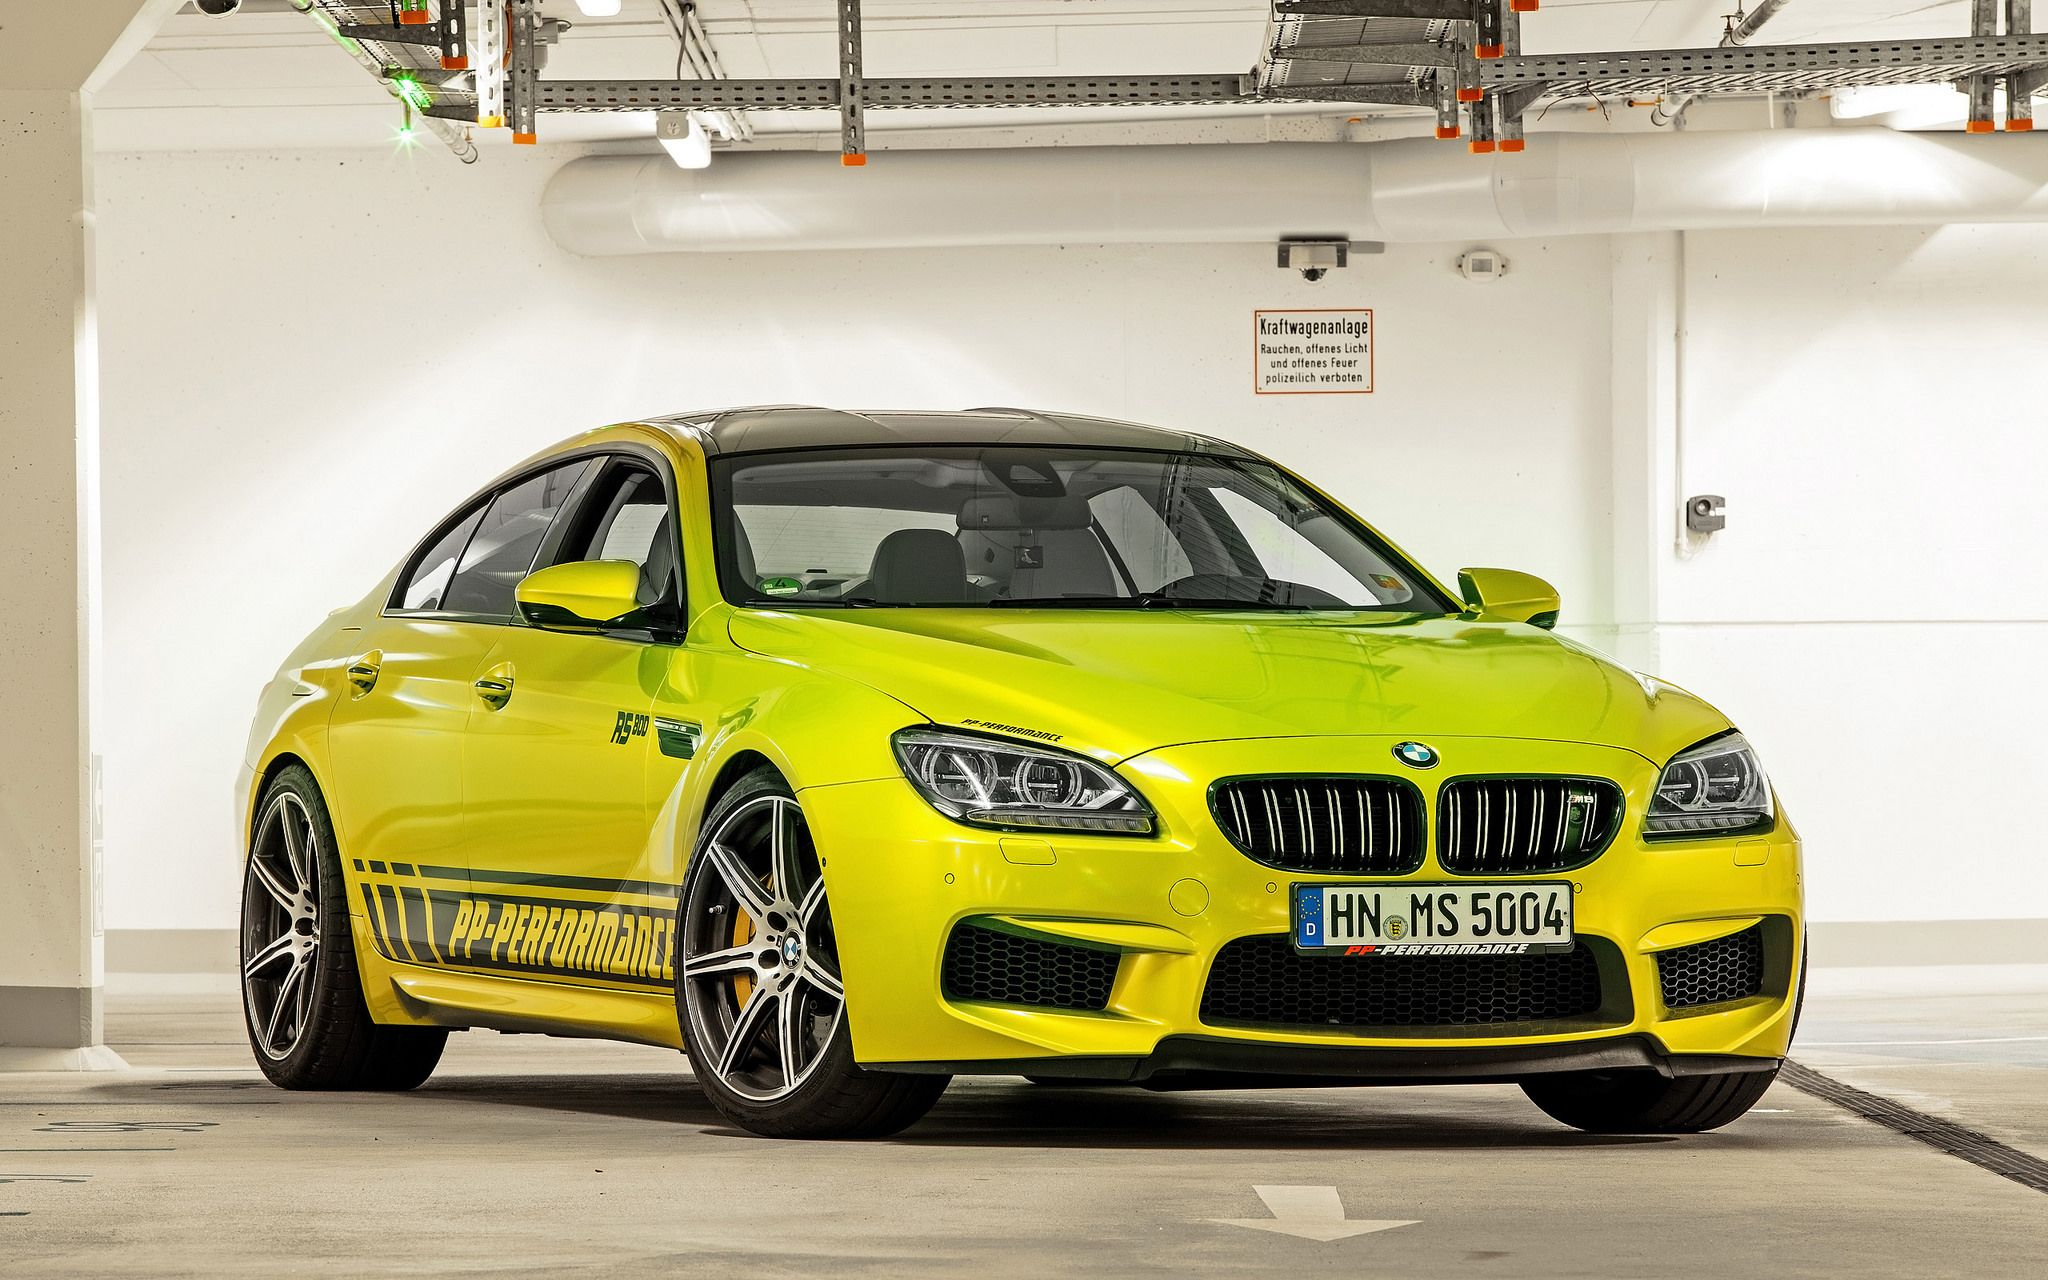 2014 Pp Performance Bmw M6 Rs800 Gran Coupe Bmw M6 Bmw Gran Coupe